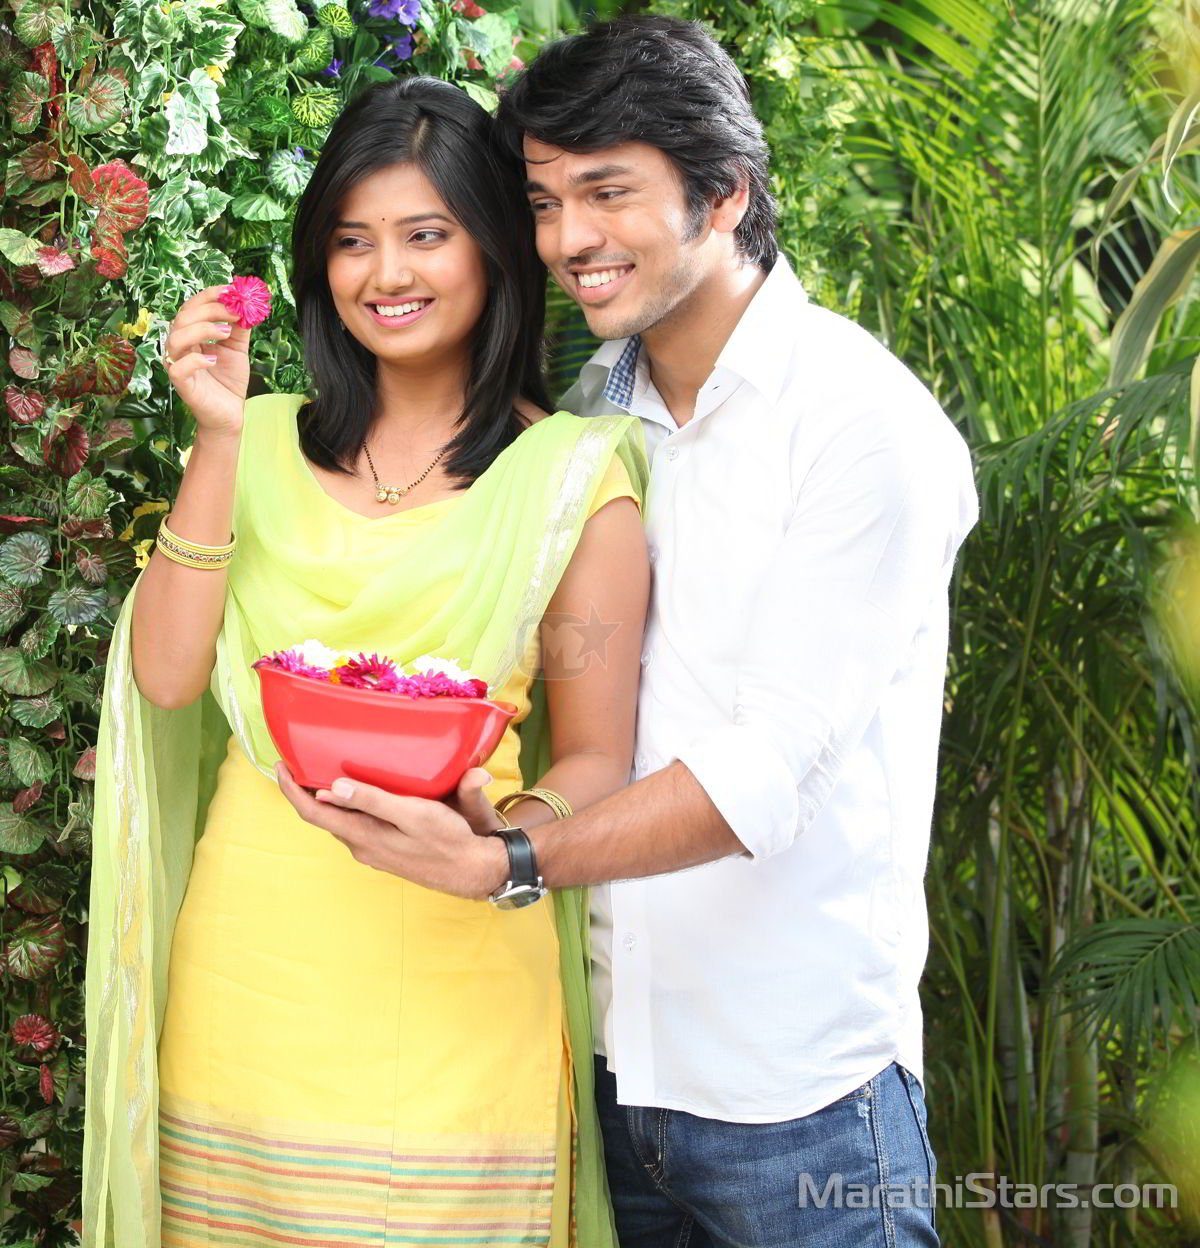 Marathi Couple Images | Search Results | Calendar 2015